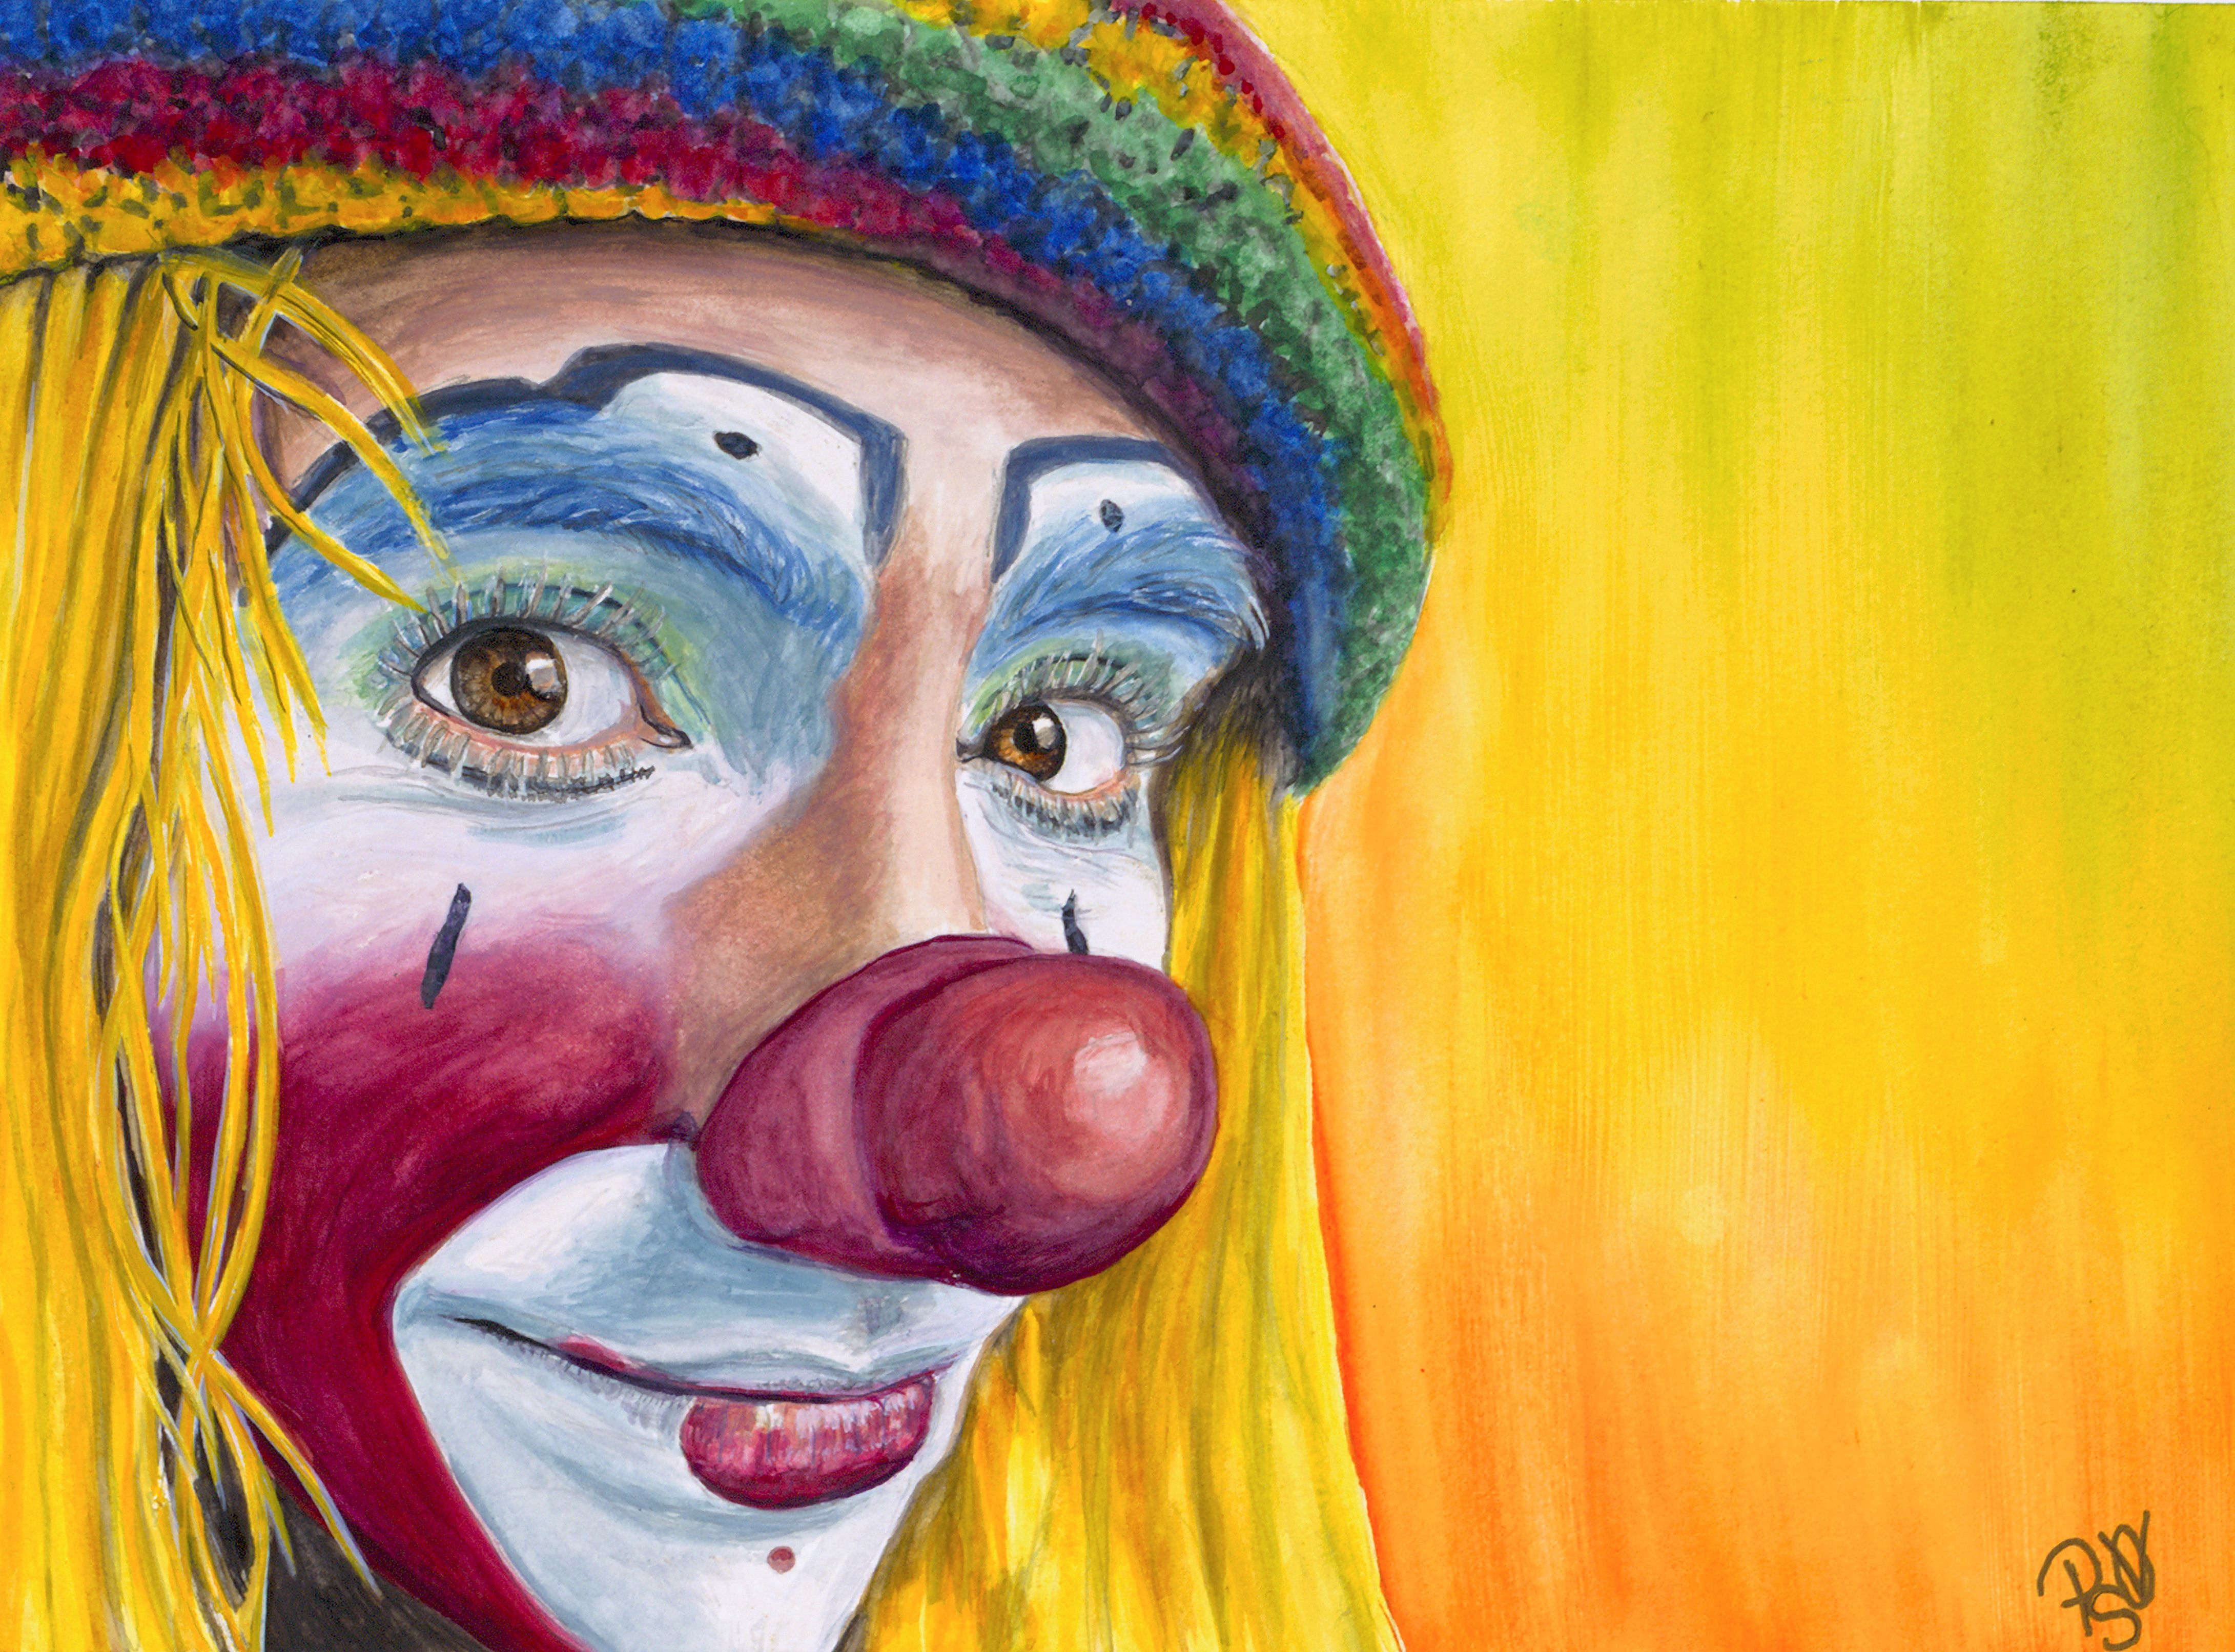 Giclee Print - Watercolor Clown #22 Daniel Flores AKA Pedalito    Fine Art Paper or Canvas    Giclee Print Size: 9 X 12 , 11 X 14, or 16 X 20inches    Frame: Unframed    Signed on back and on comes with signed Certificate of Authenticity    The canvas will have black sides and have a wire ready for hanging.    The paper upon which the ink was applied is fine art paper : acid free, lignin chlorine free, smudge resistant. Avoid touching the surface of the print. Required framing under glass.